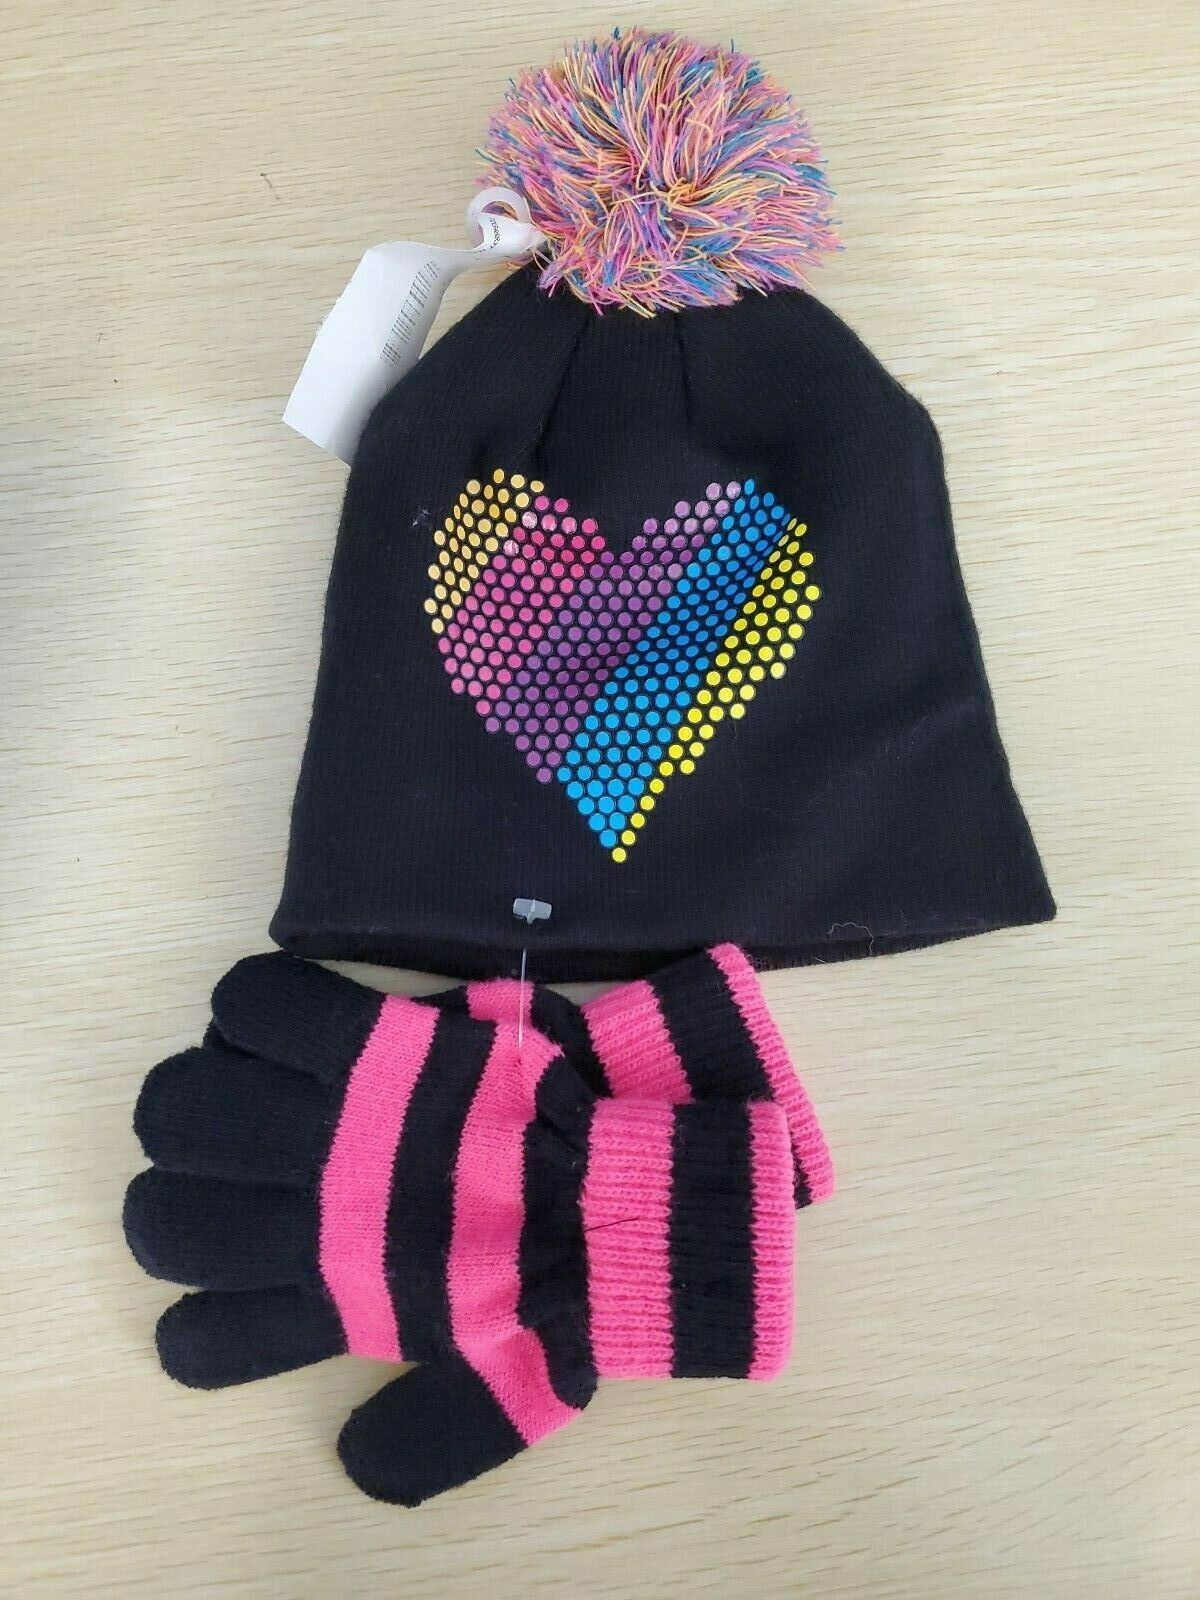 Primary image for CAPELLI OF NEW YORK INC girls KNIT 2 piece SET Hat gloves Heart  BLACK, S/M